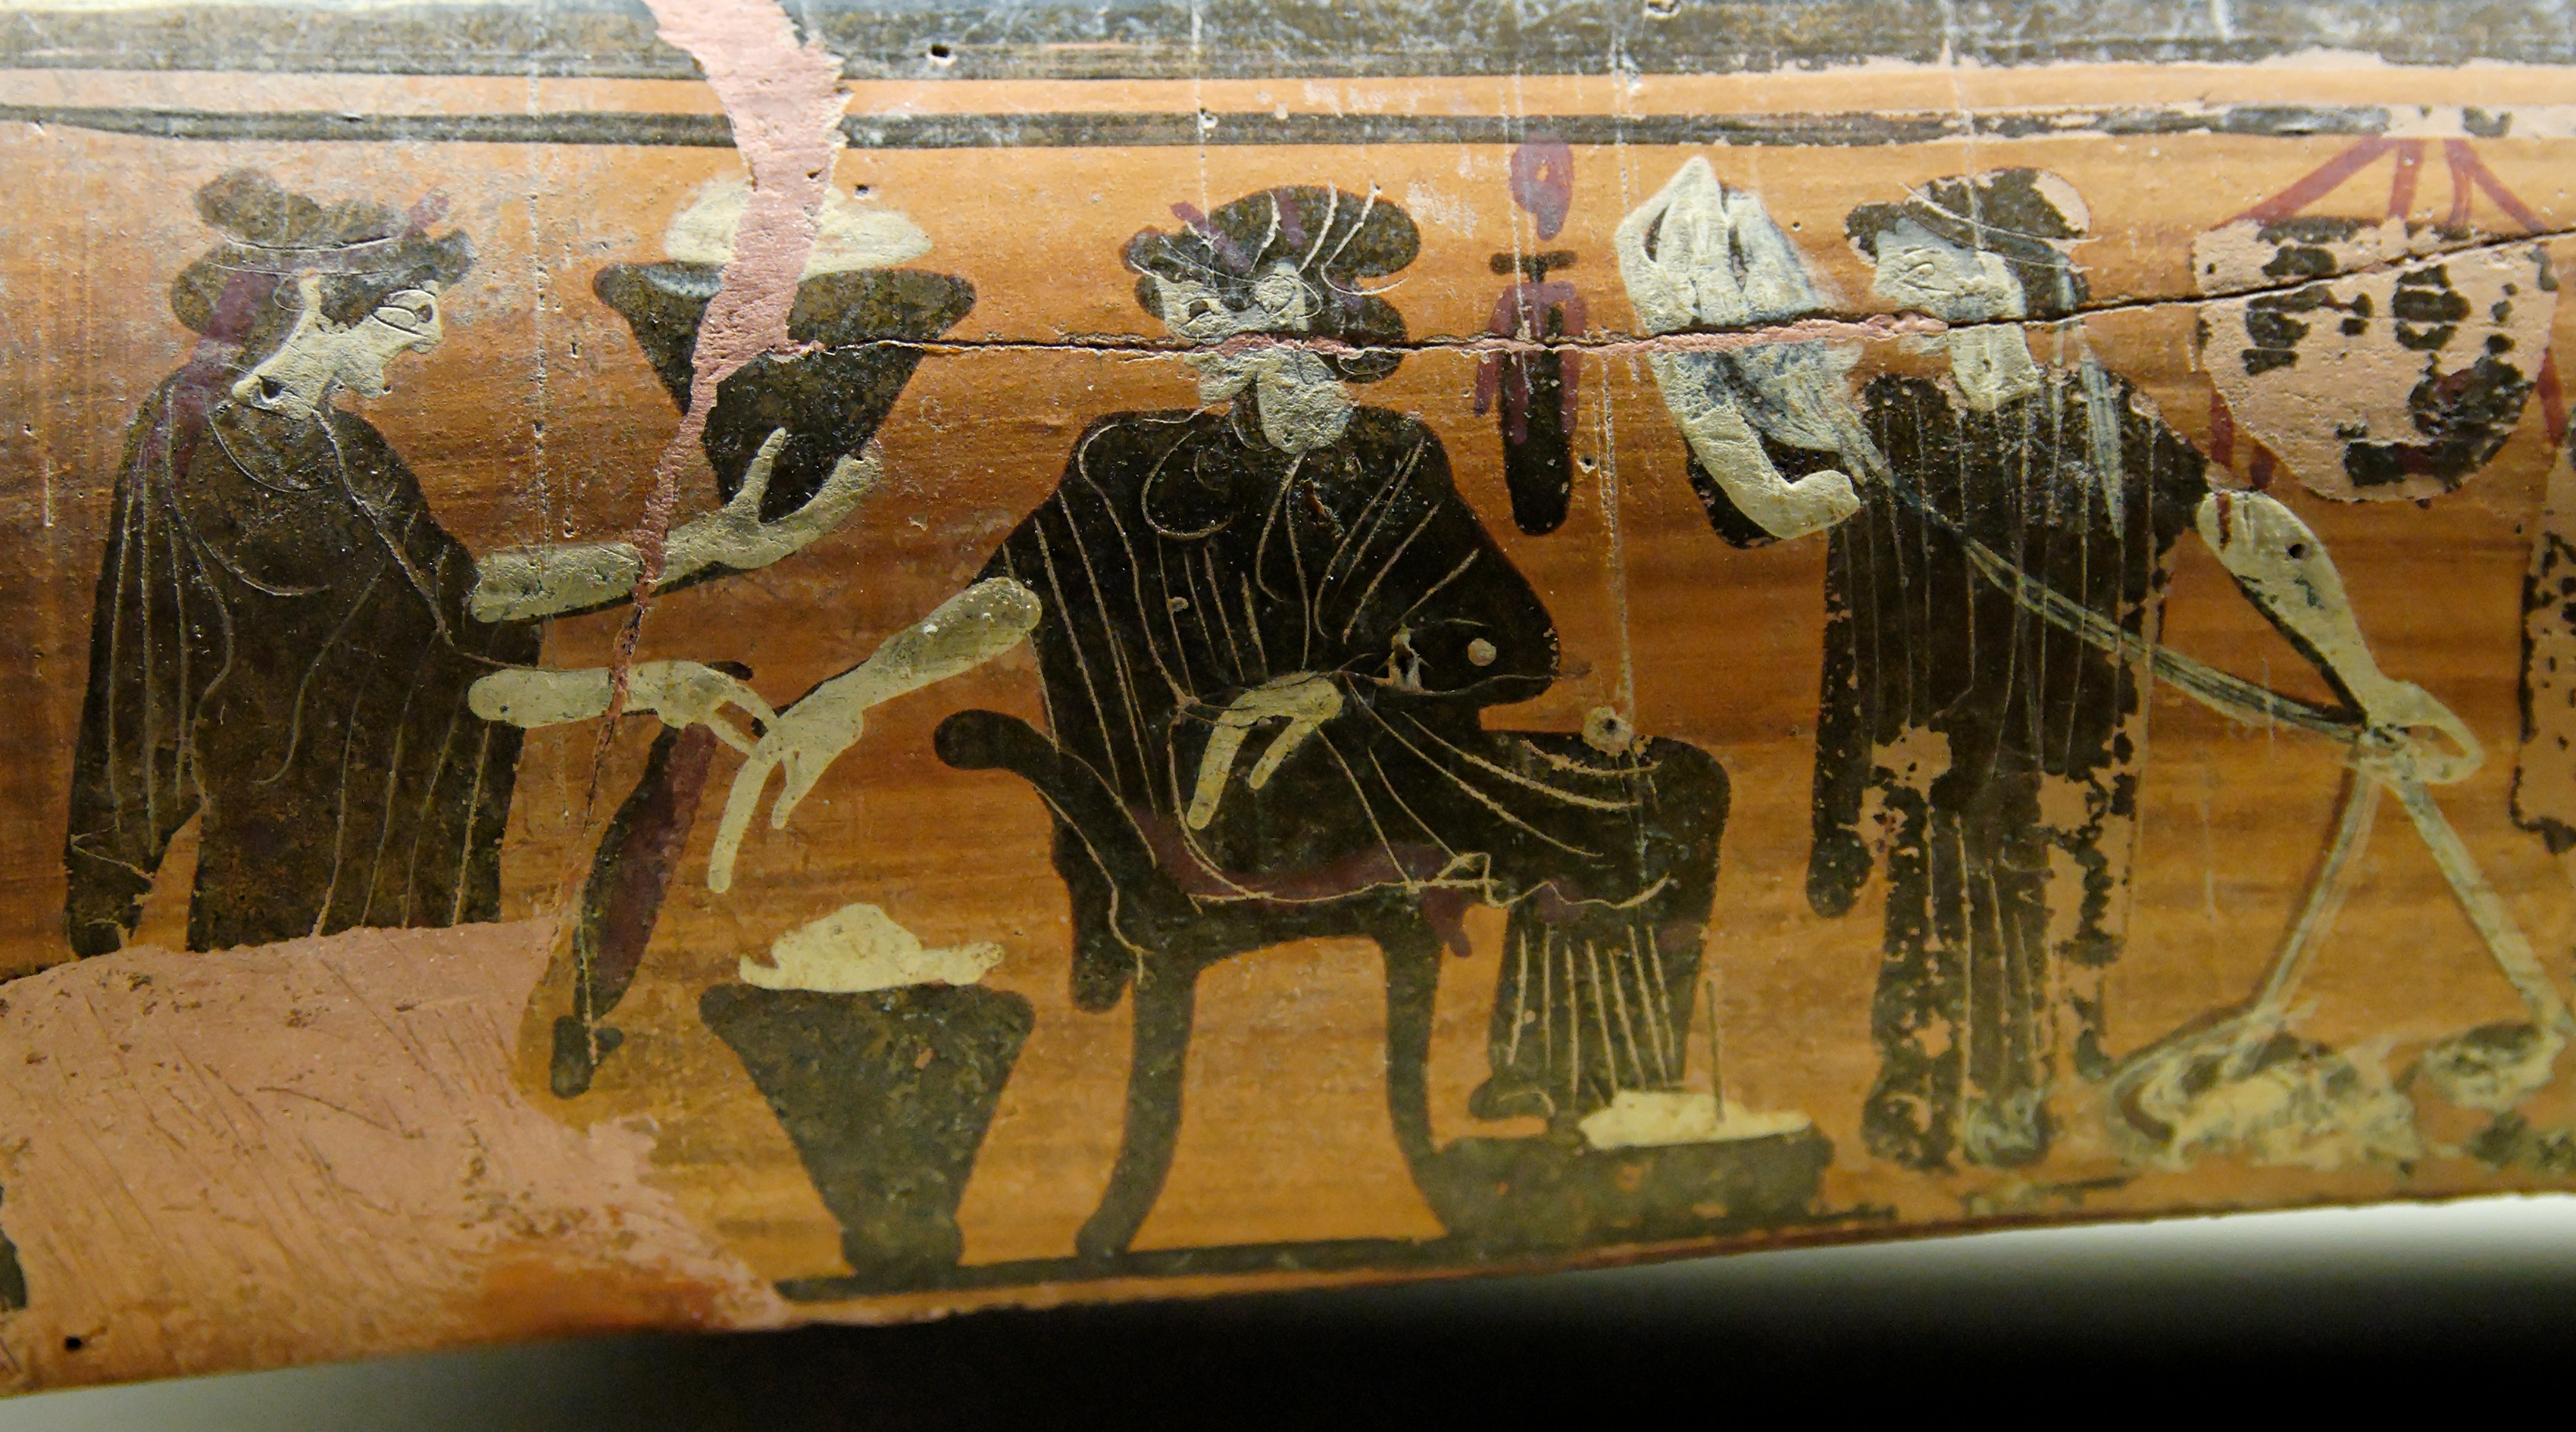 Detail from greek vase showing women preparing wool. Diosphos Painter [CC BY 2.5 (http://creativecommons.org/licenses/by/2.5)], via Wikimedia Commons